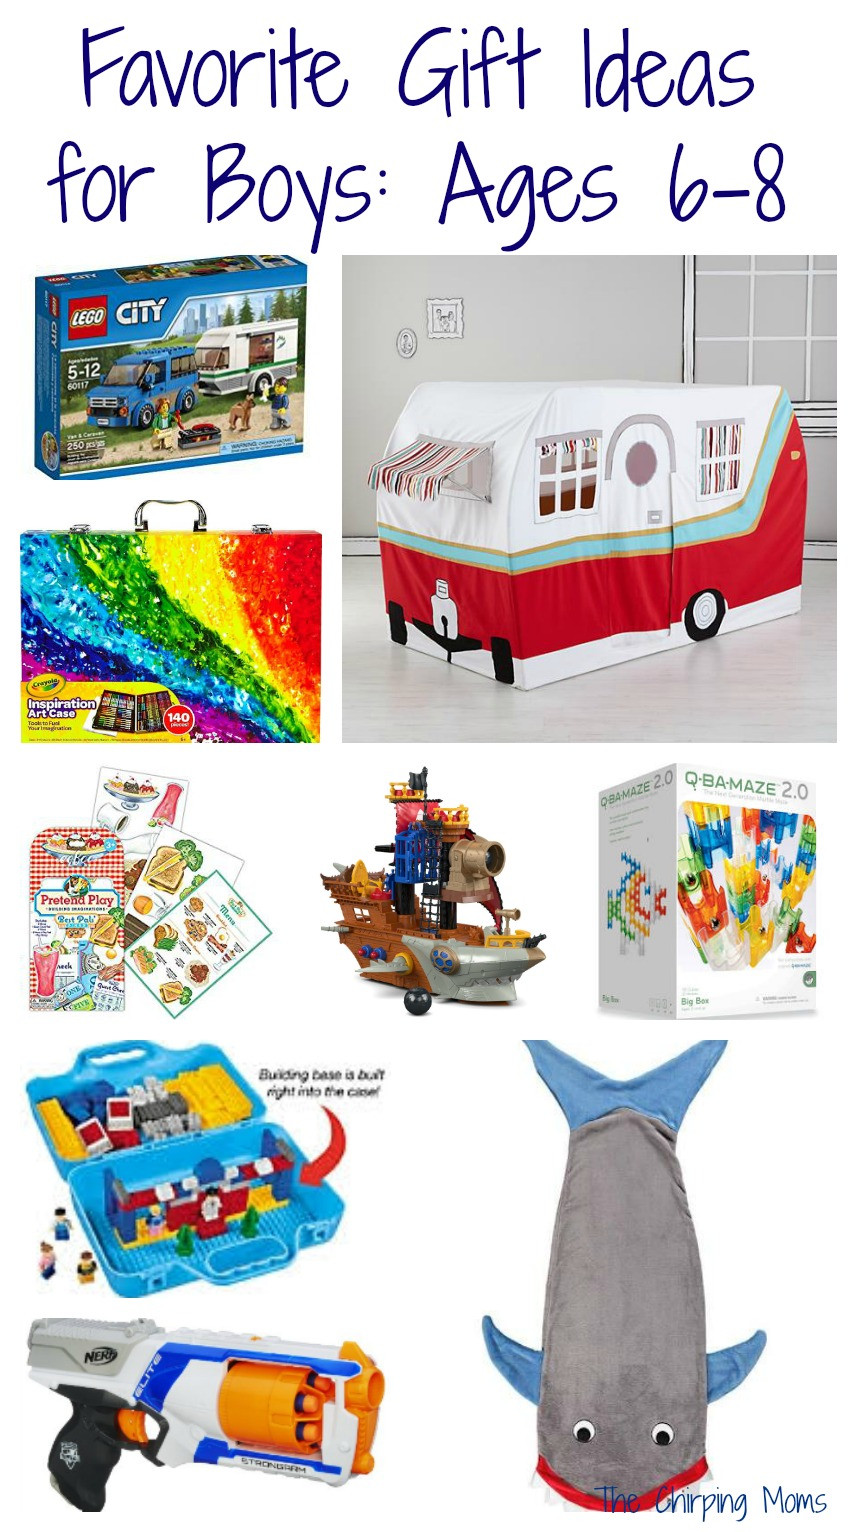 Gift Ideas For Boys Age 5  50 Favorite Gift Ideas for Boys Ages 6 8 The Chirping Moms